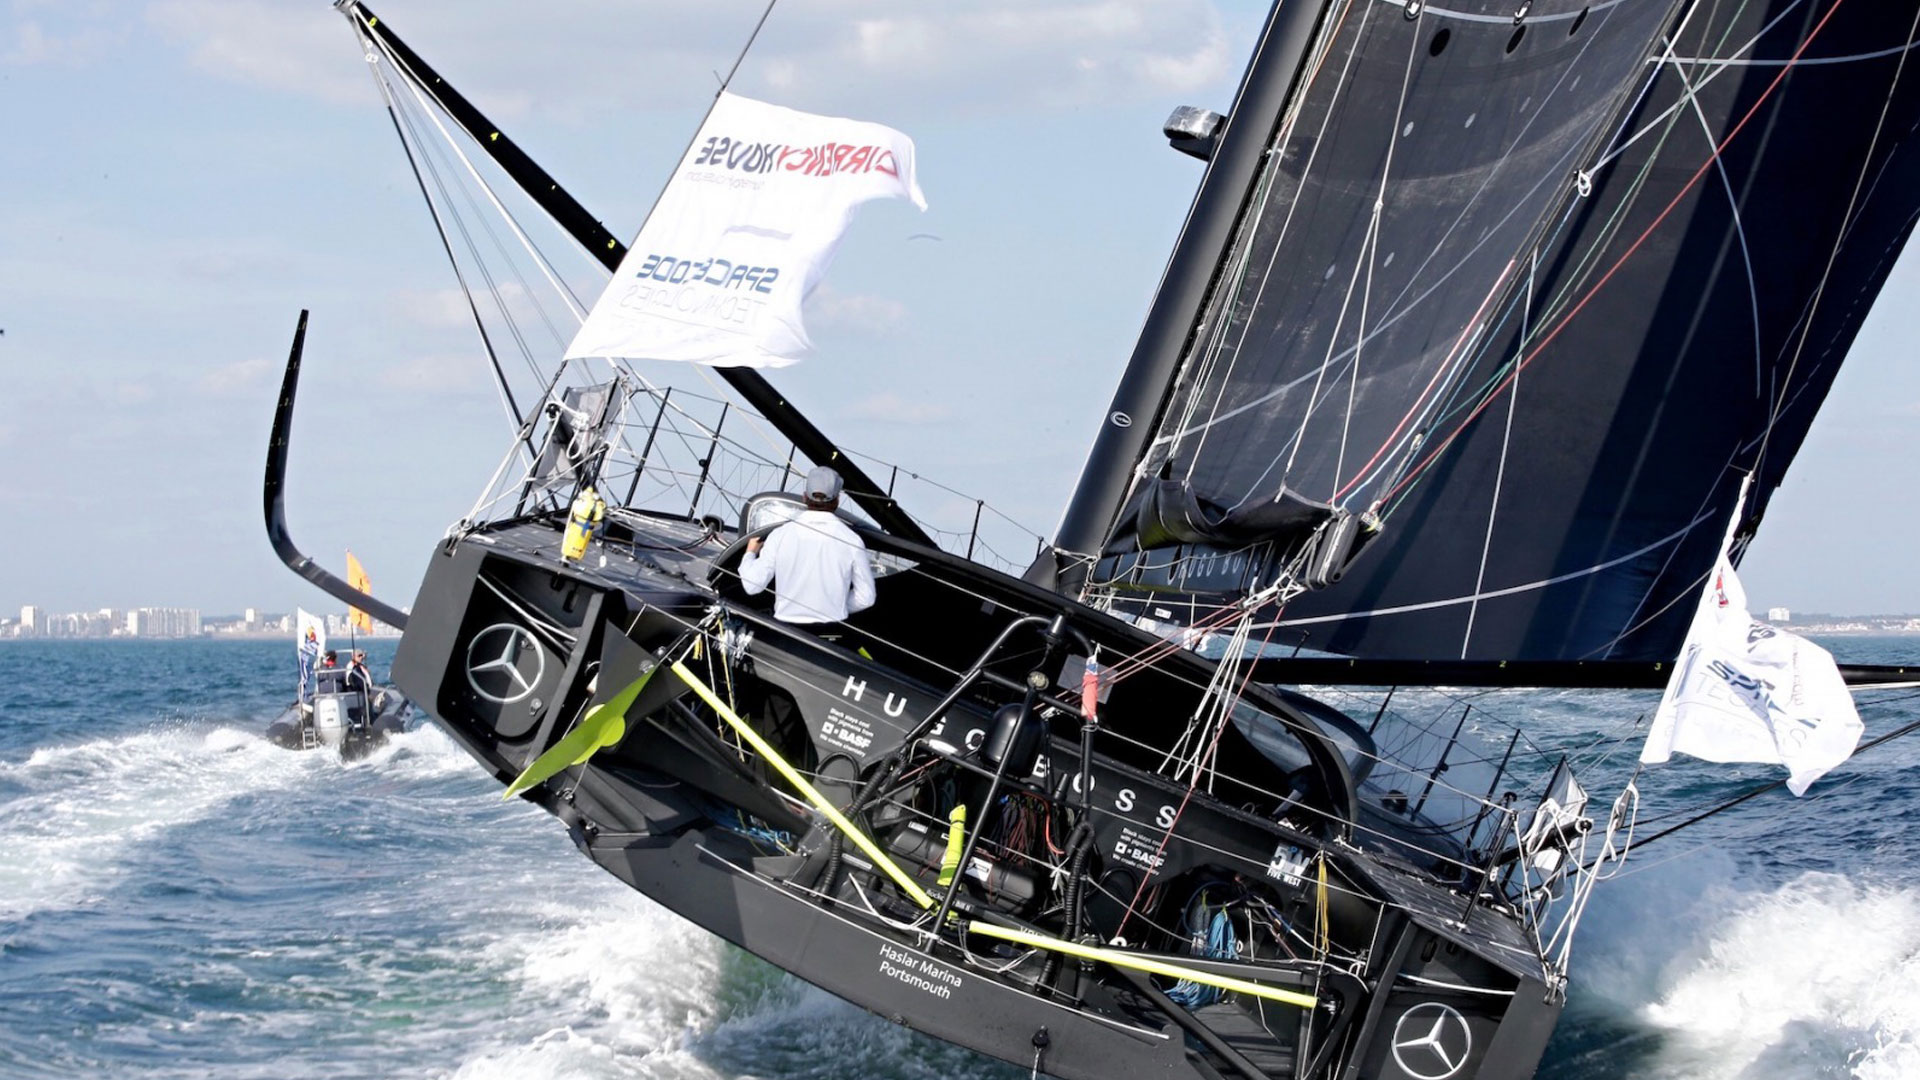 DREAM RACER BOATS DreamRacerBoats-BateauDeCourses Our Yachts